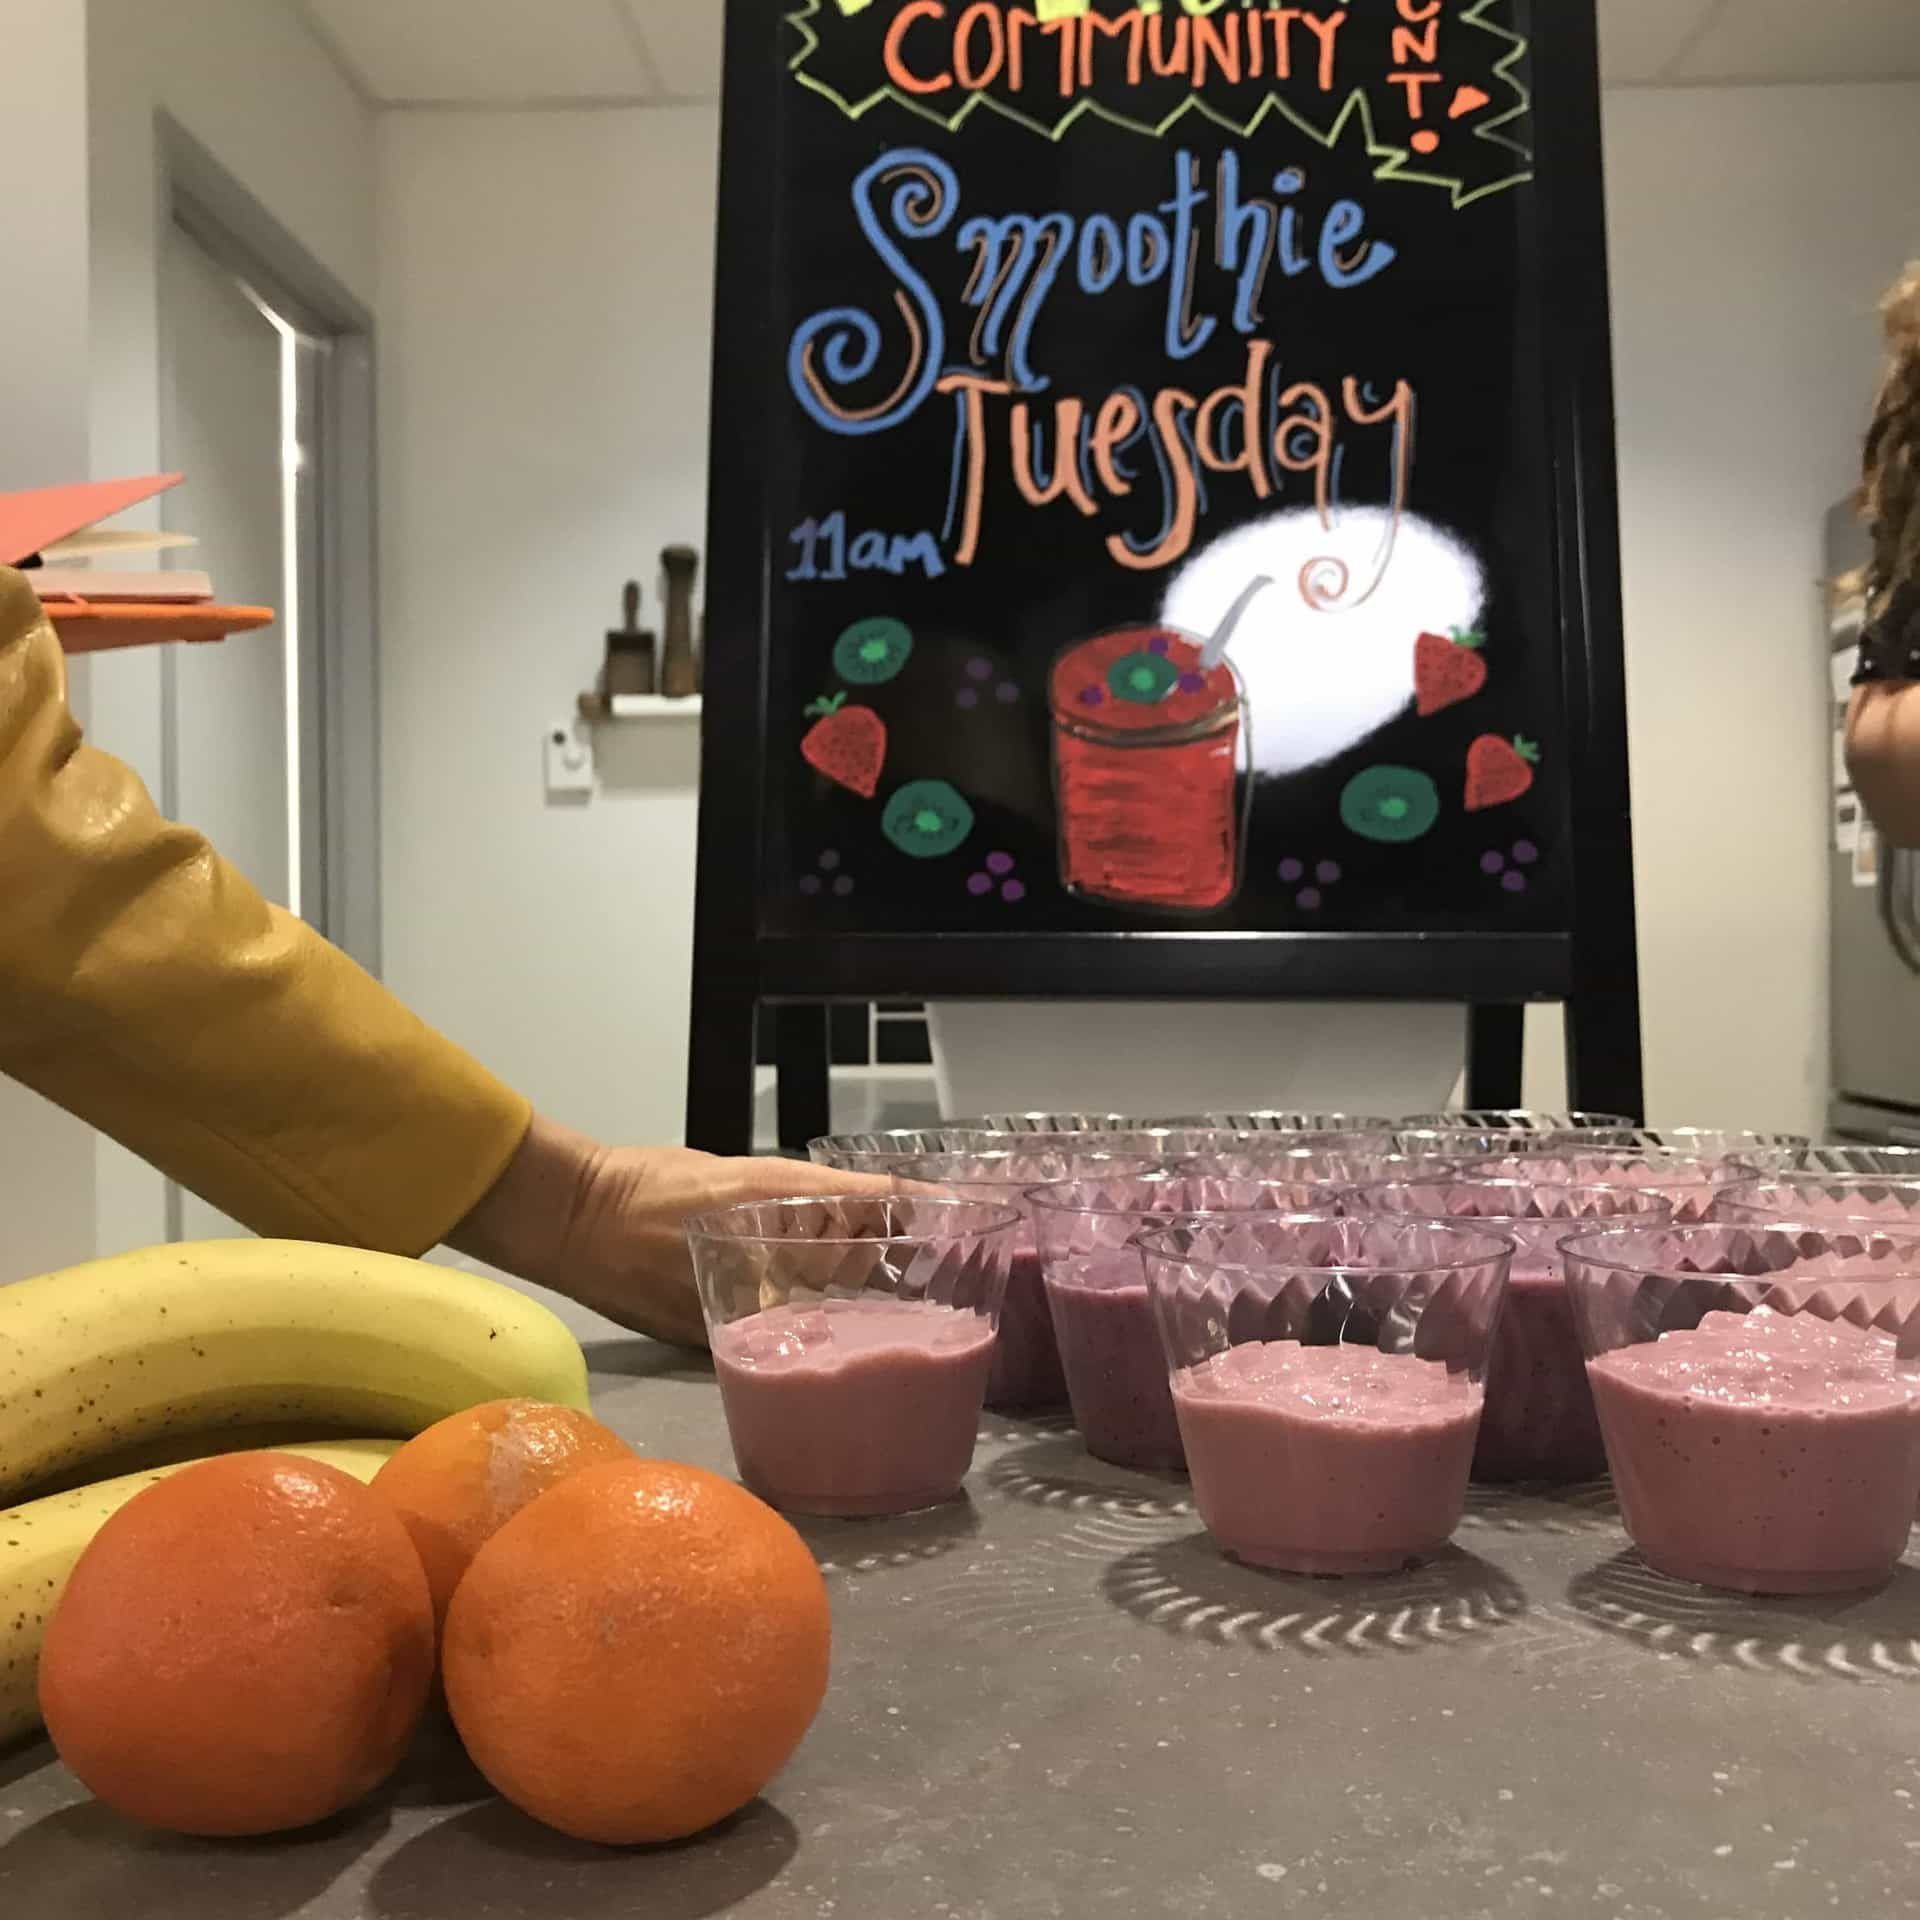 Lots of smoothies lined up